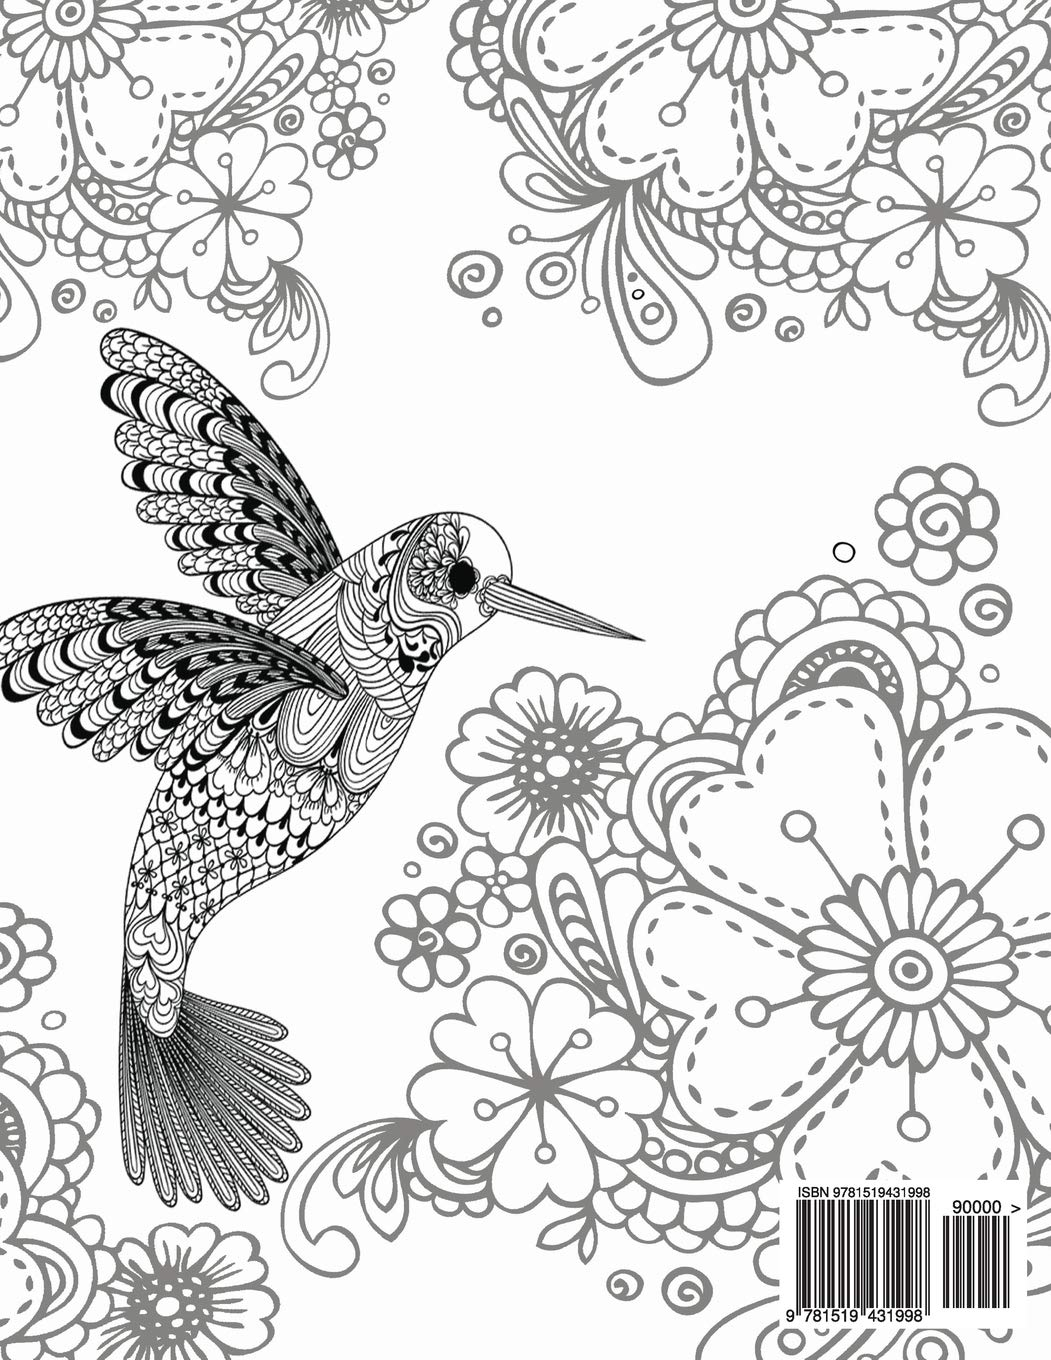 Amazon.com: Birds Coloring Book For Adults (The Stress ...